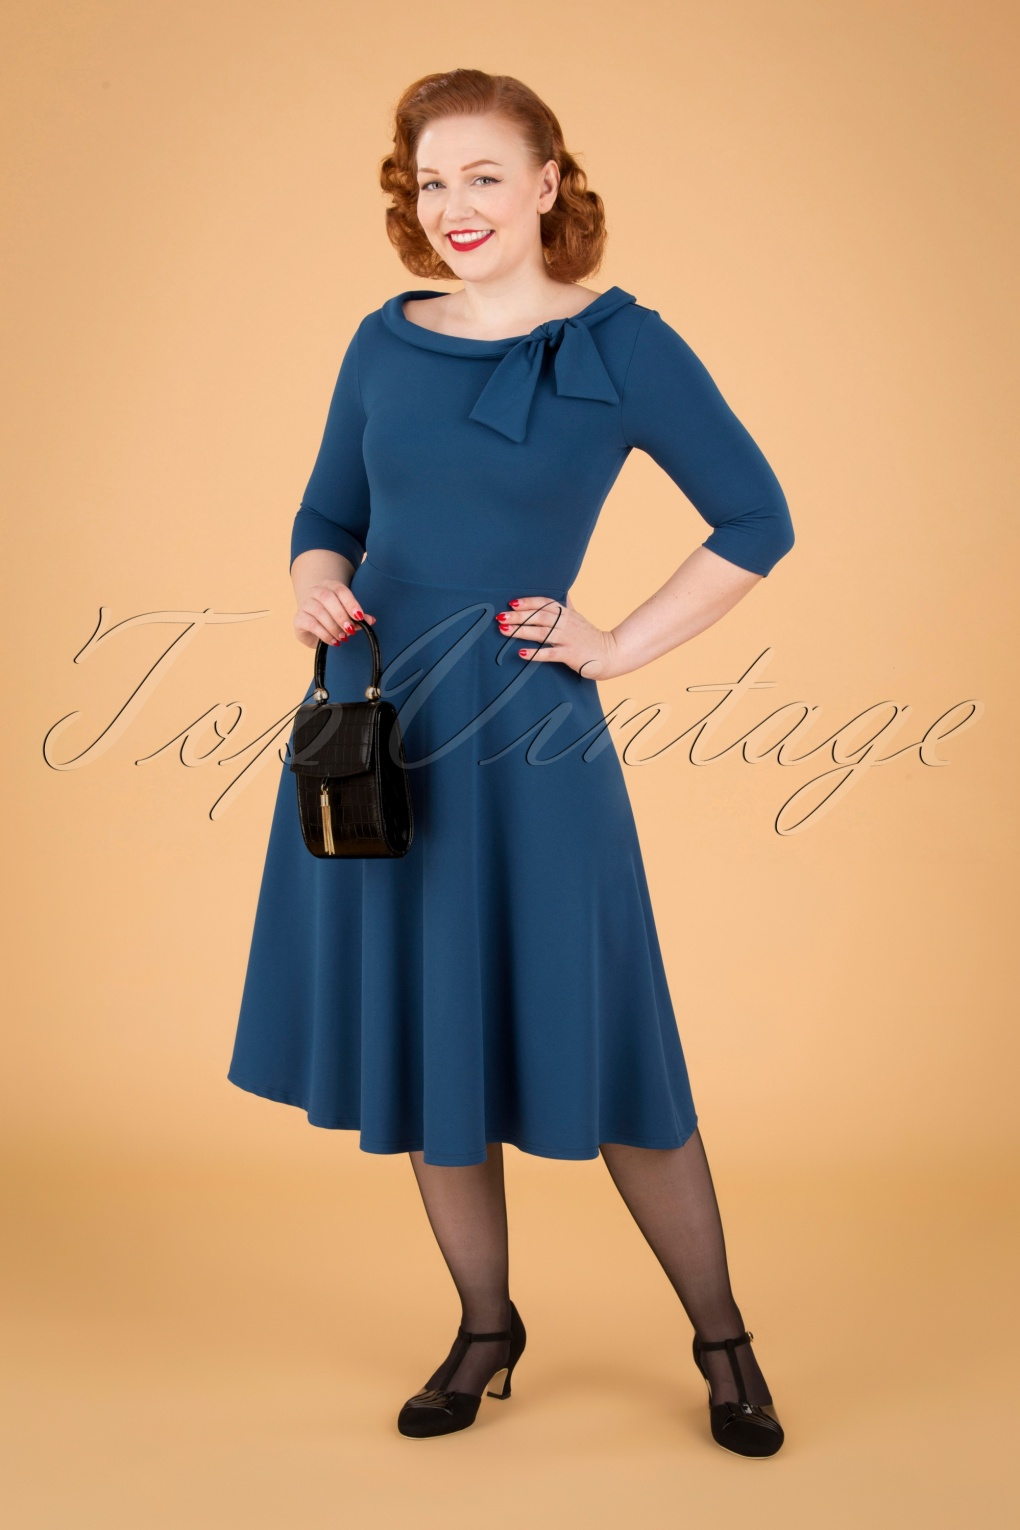 60s Dresses | 1960s Dresses Mod, Mini, Hippie 50s Beverly Swing Dress in Teal £60.02 AT vintagedancer.com